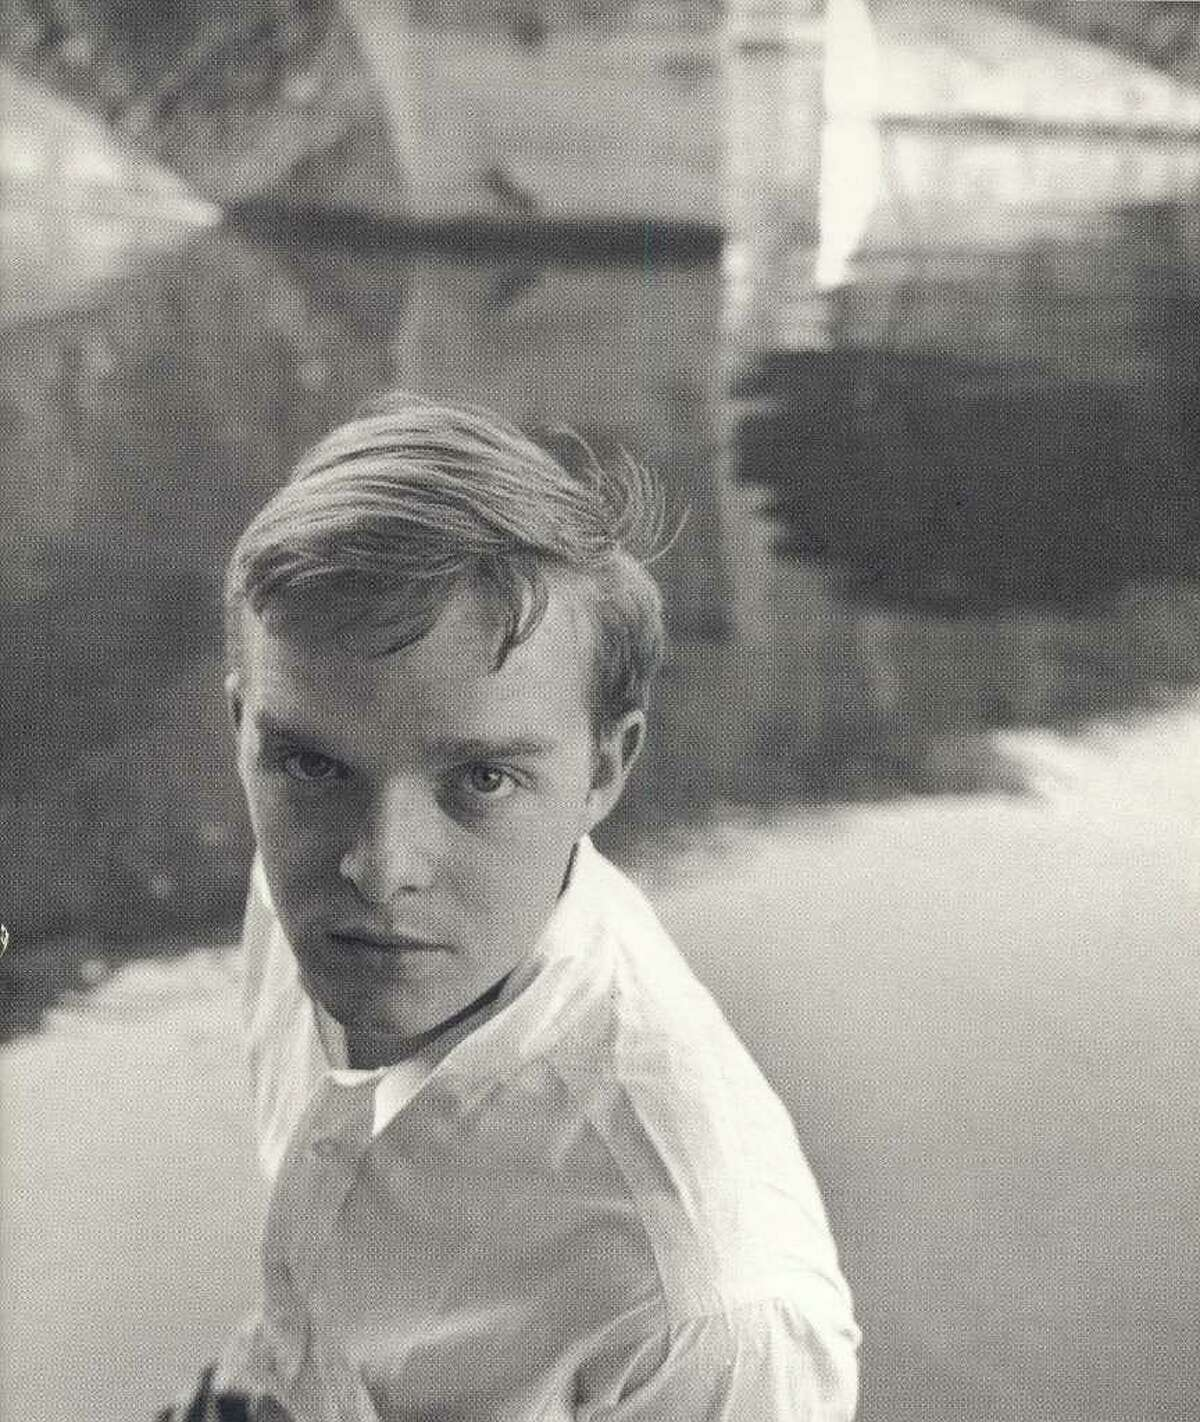 Truman Capote, who lived in Greenwich and attended Greenwich High School from 1939 to 1941, is shown in this photo from the late 1940s. Photo courtesy of the Greenwich Historical Society.